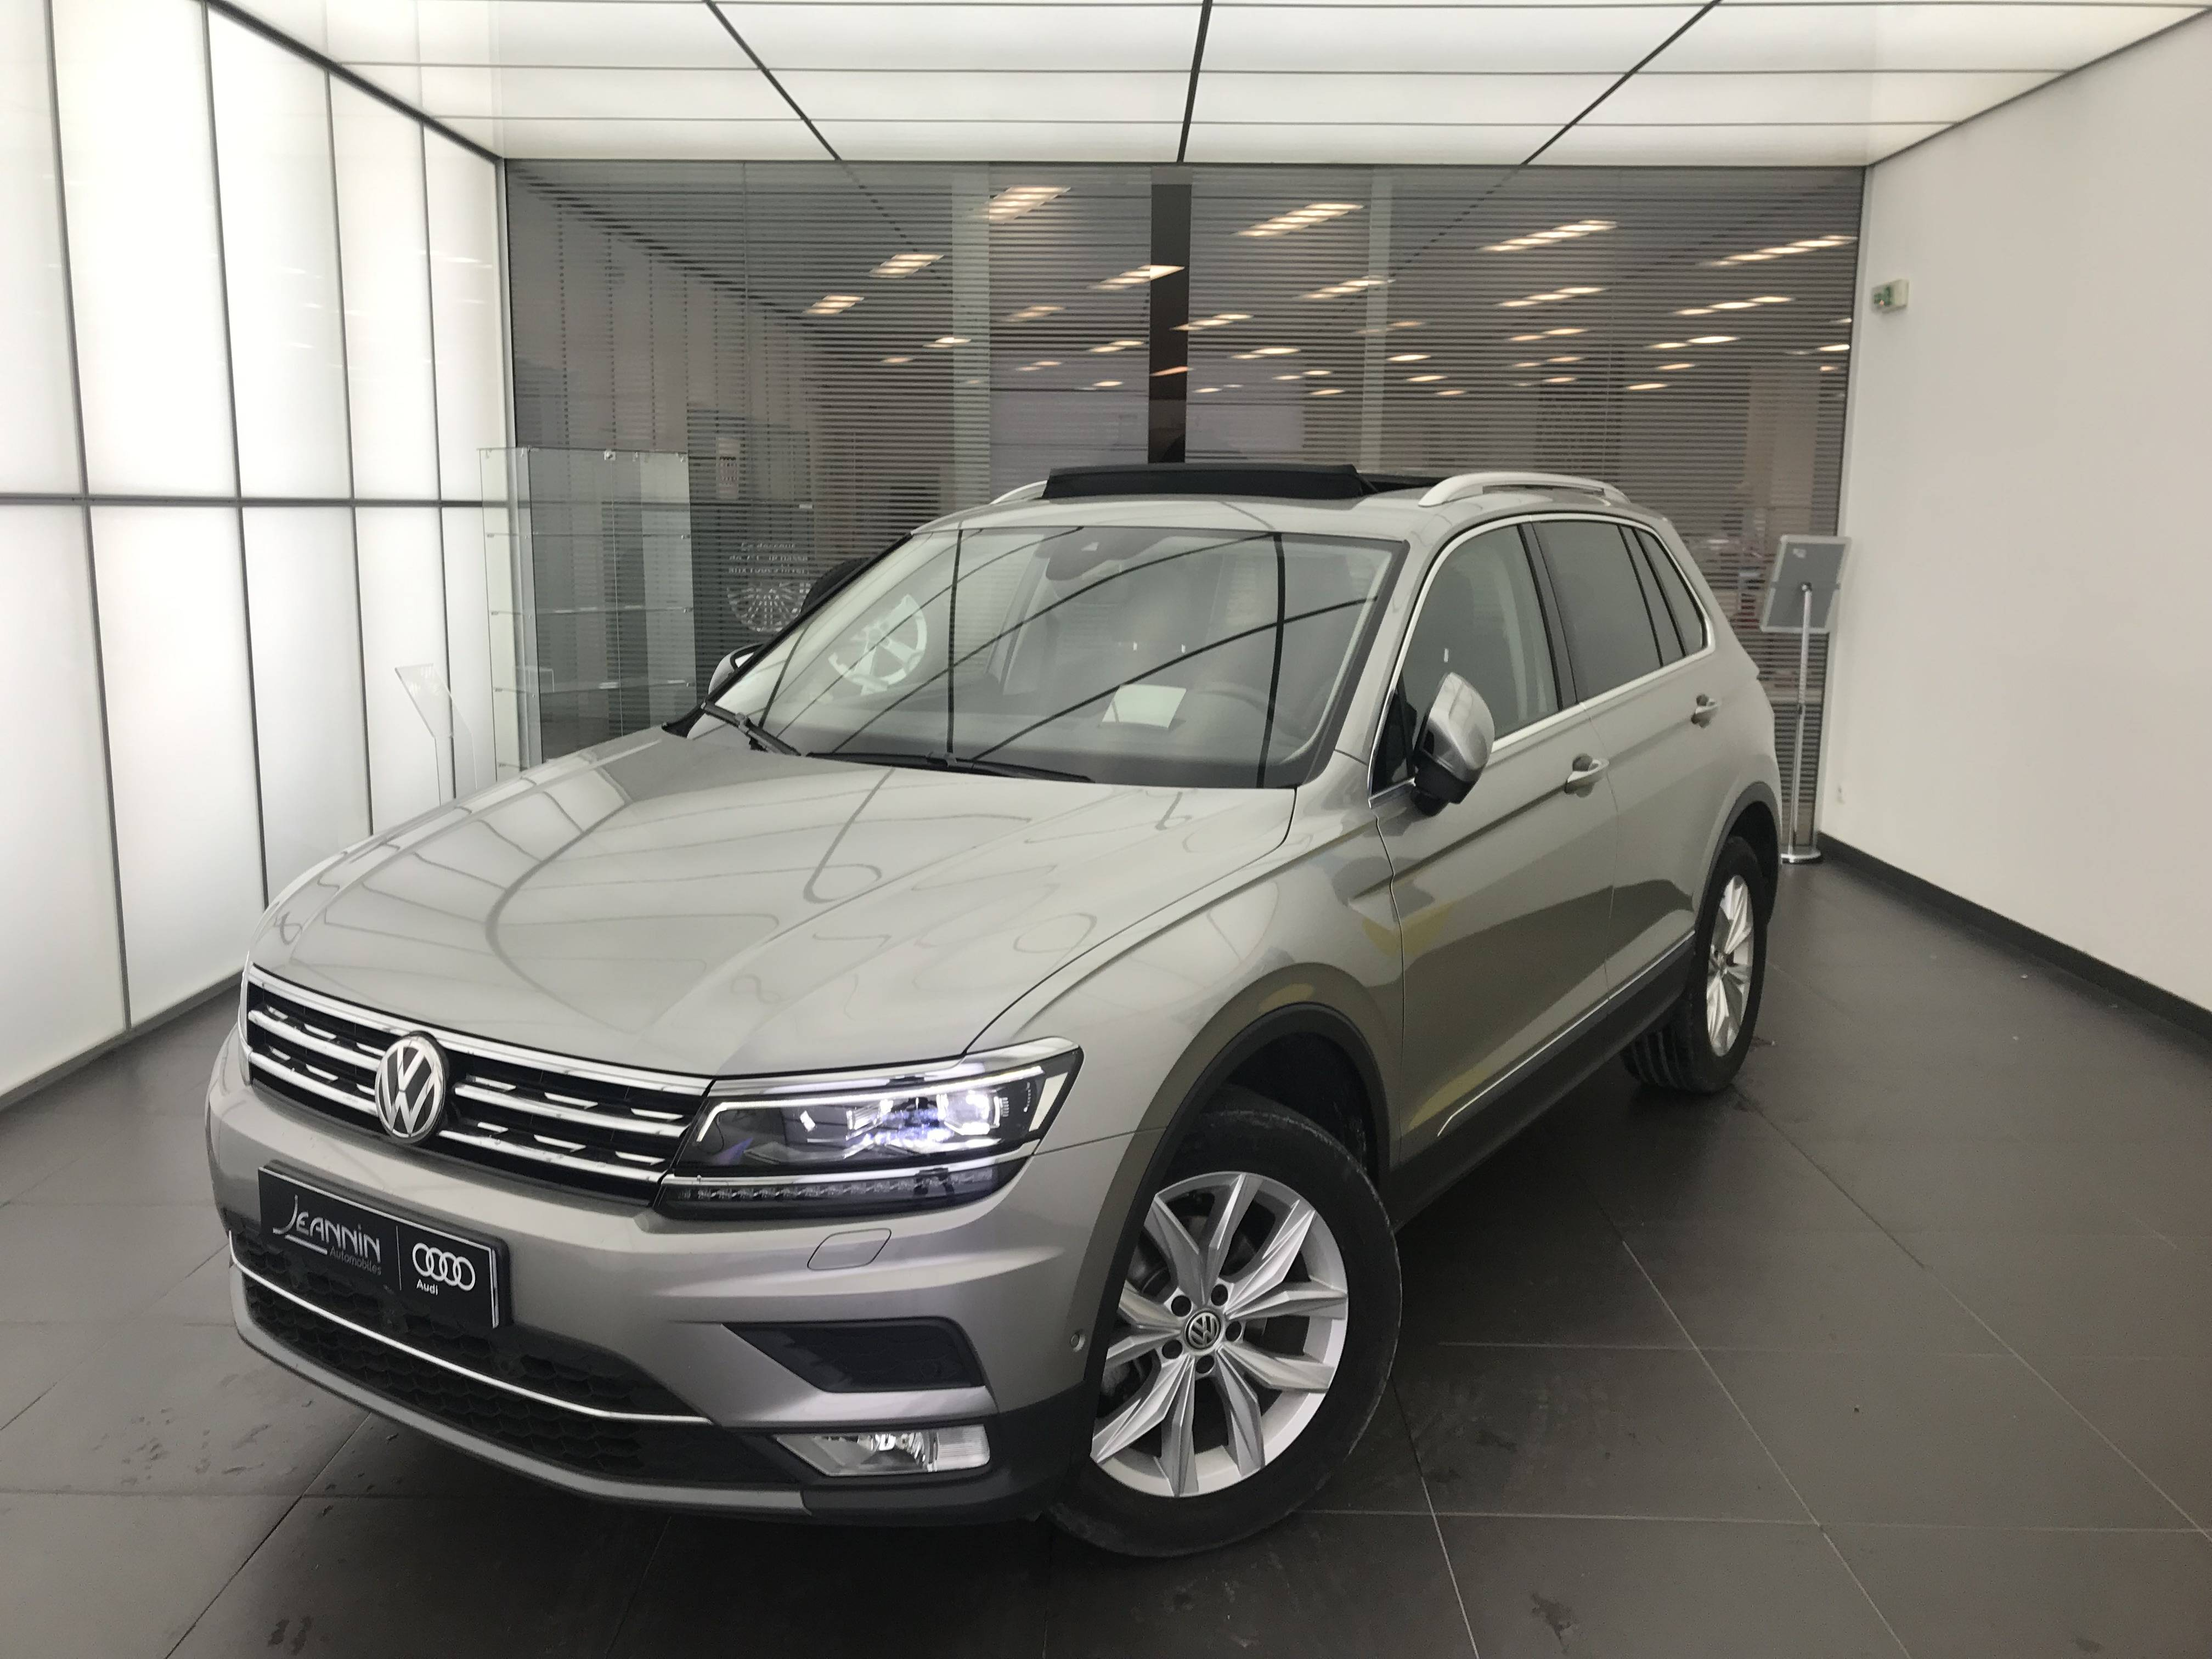 Tiguan 2.0 TDI 150 BlueMotion Technology DSG7 4Motion